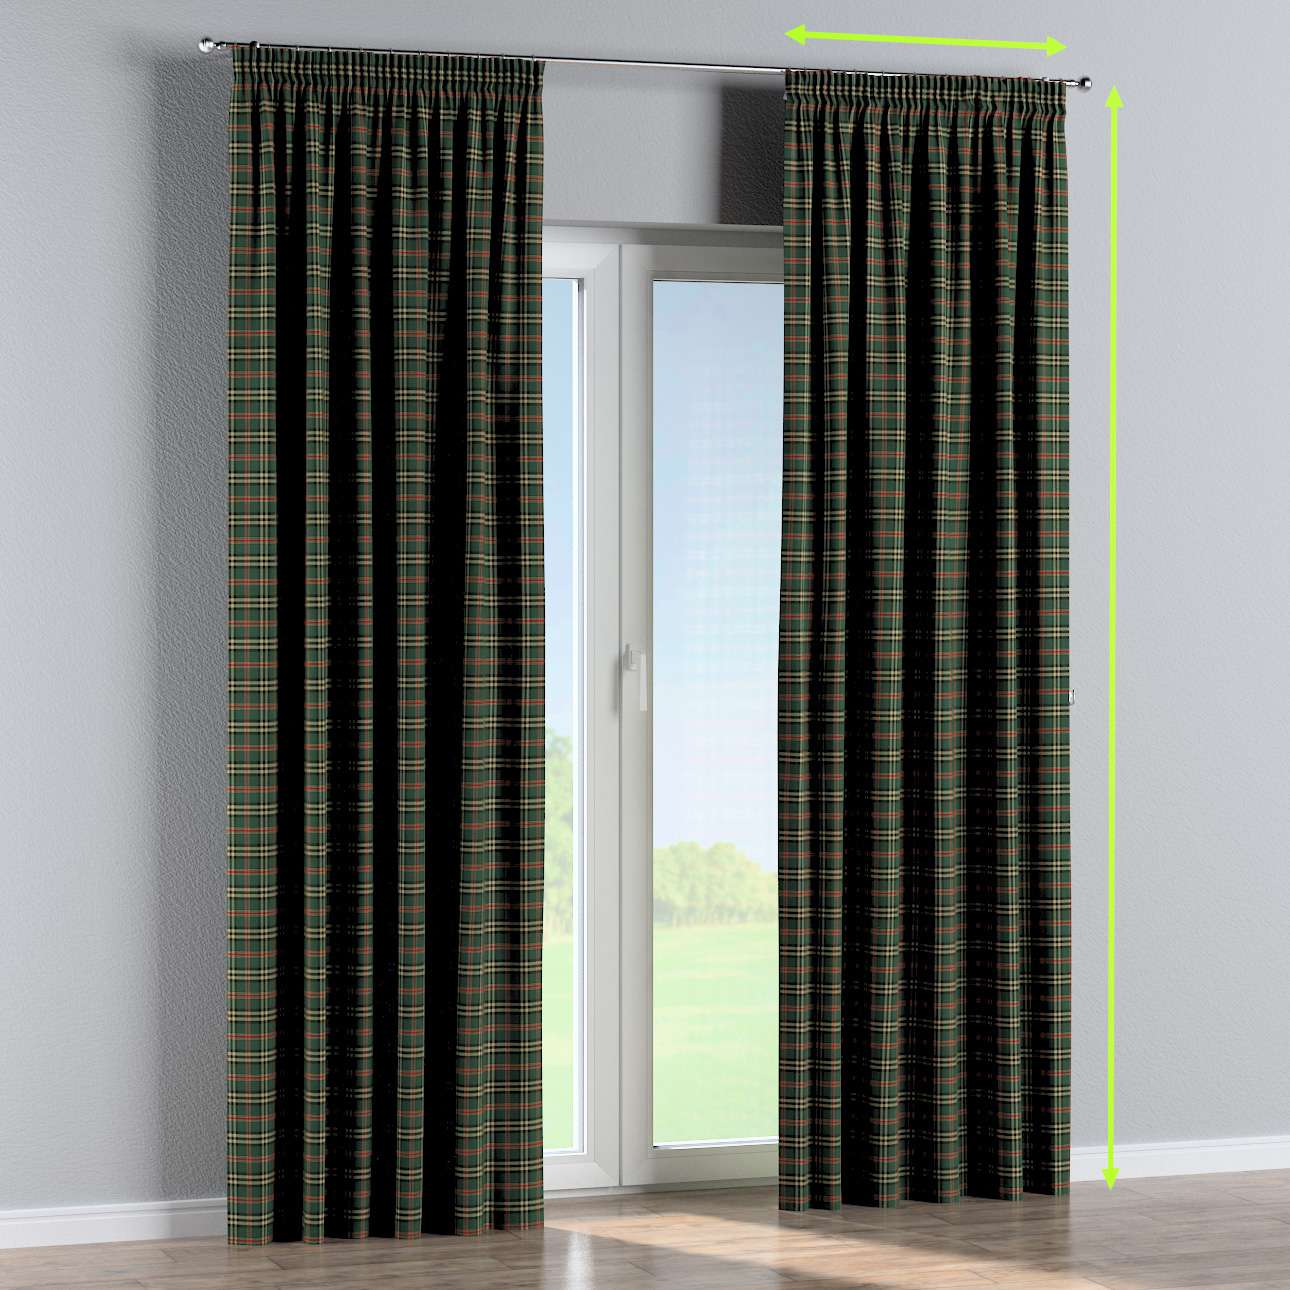 Pencil pleat curtains in collection Bristol, fabric: 142-69